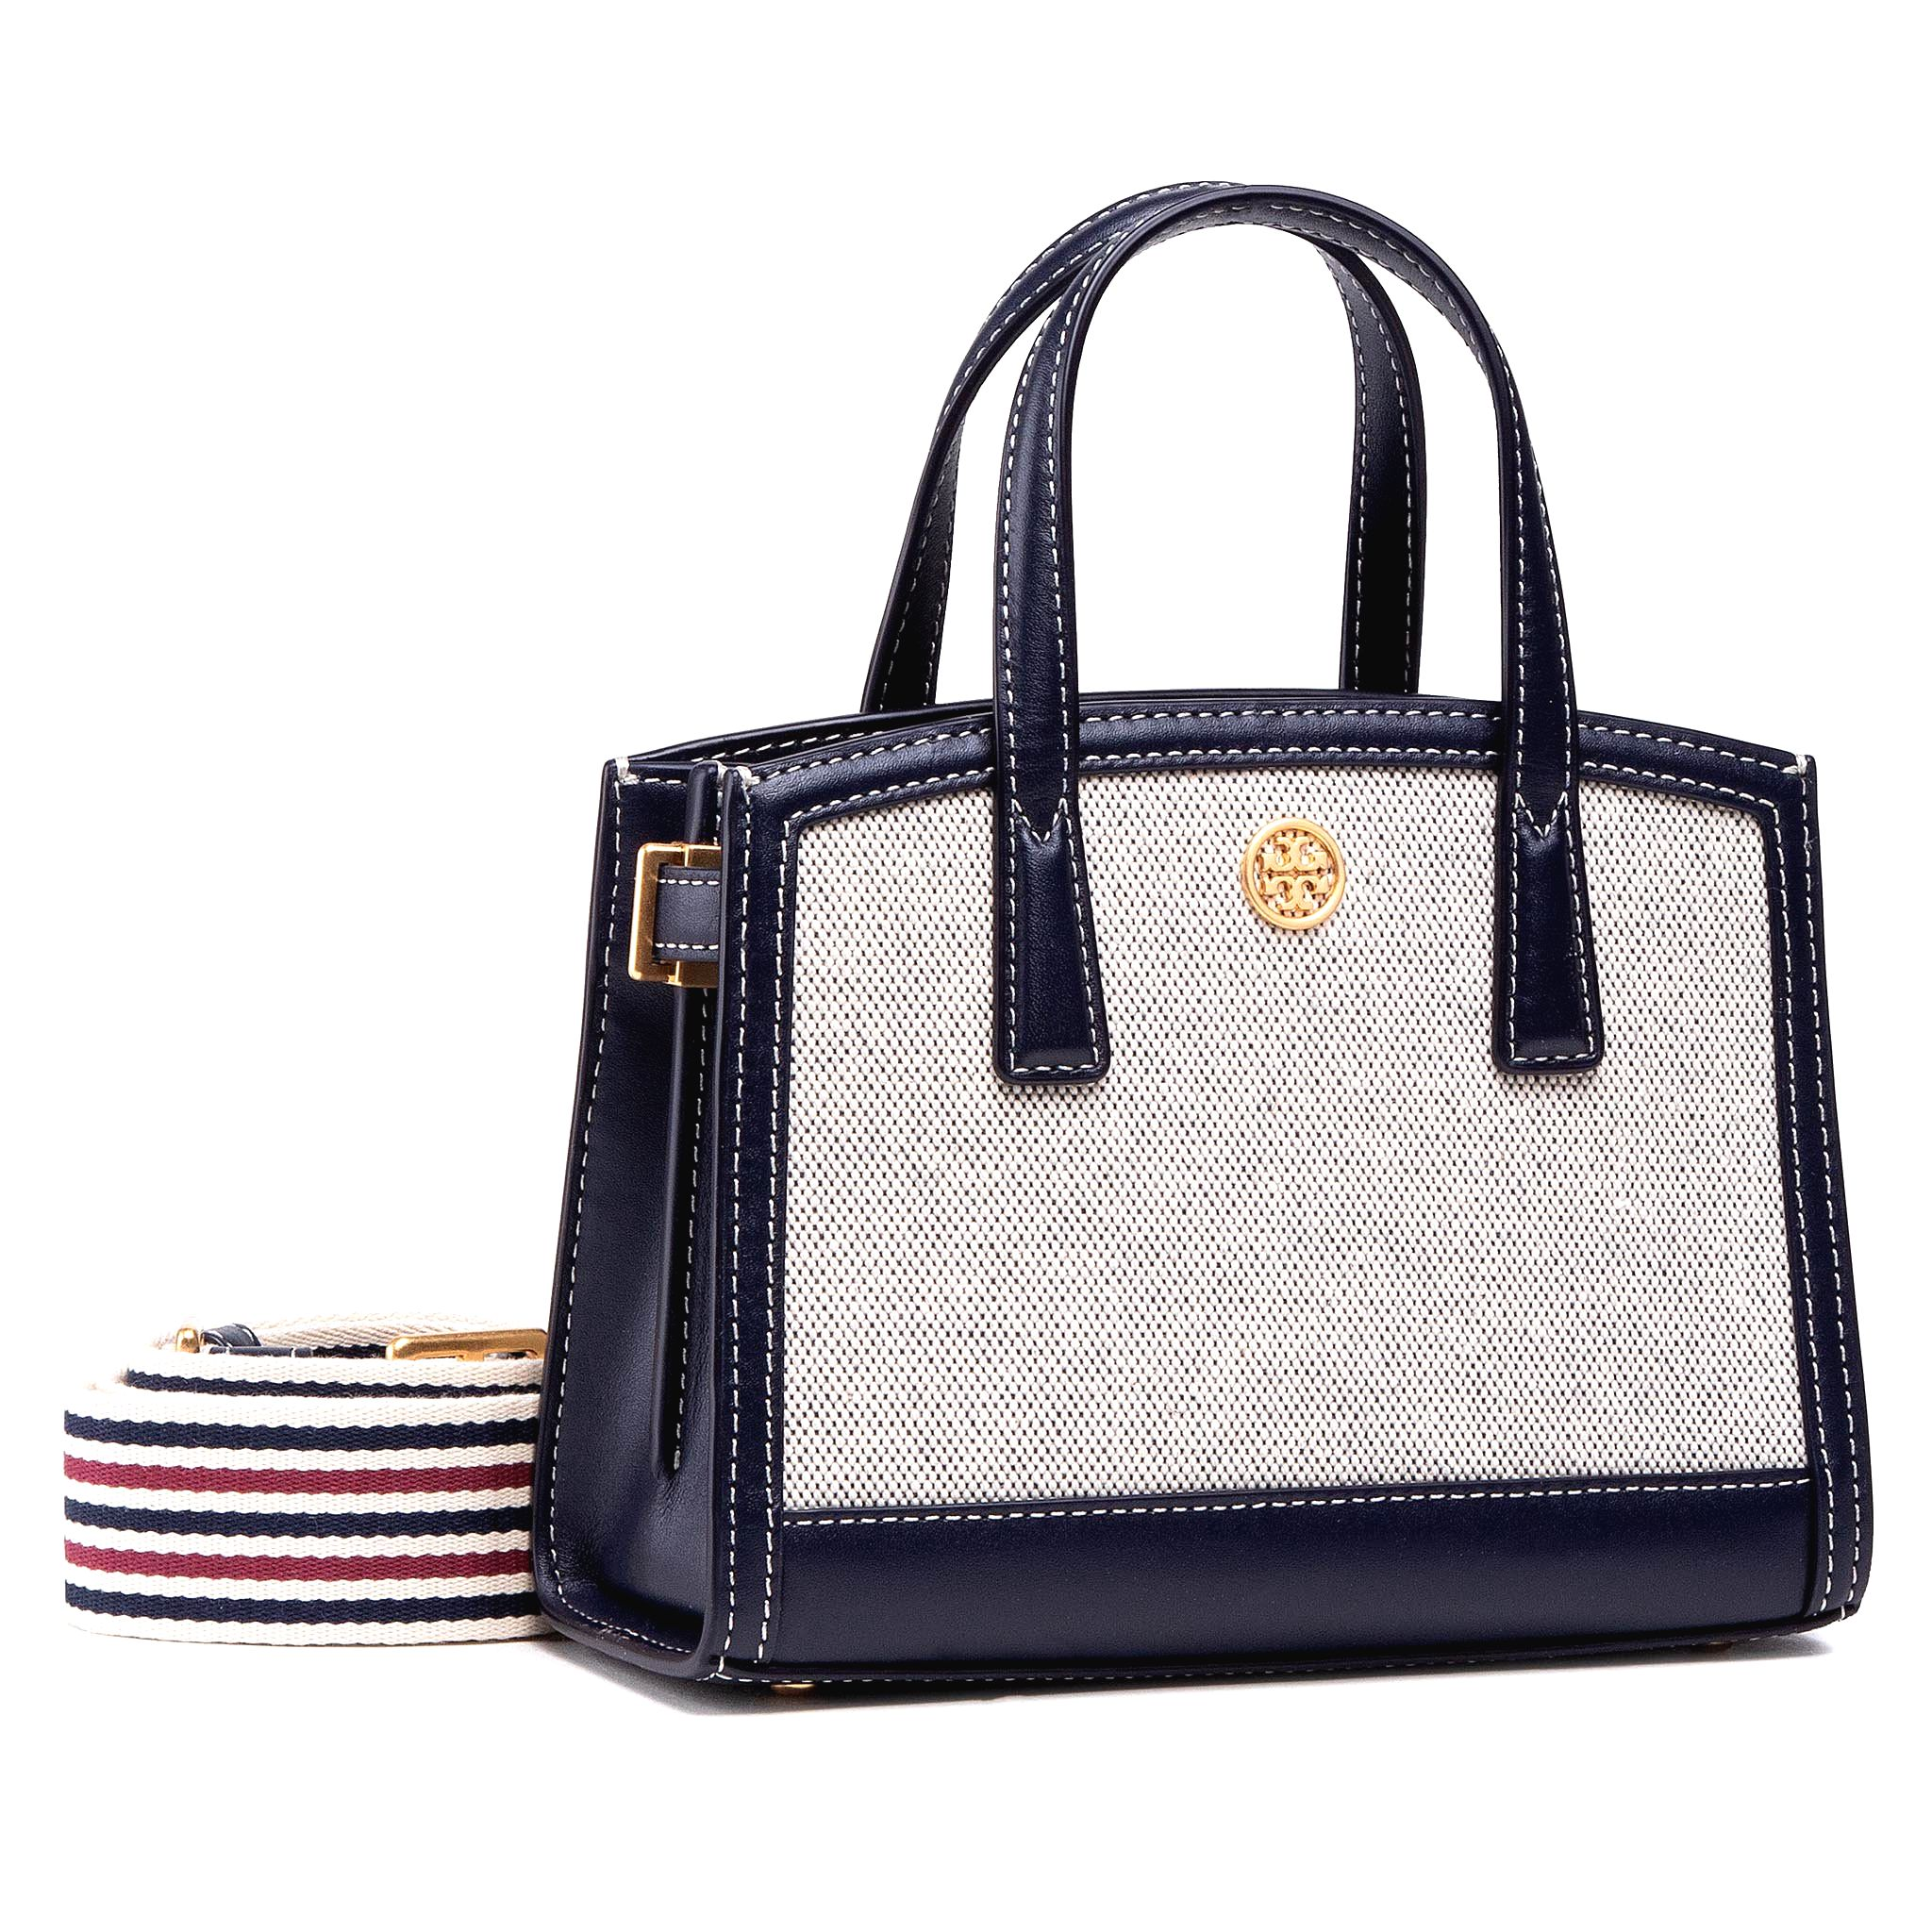 Kabelka TORY BURCH - Walker Canvas Micro Satchel 79409 Tory Navy 405